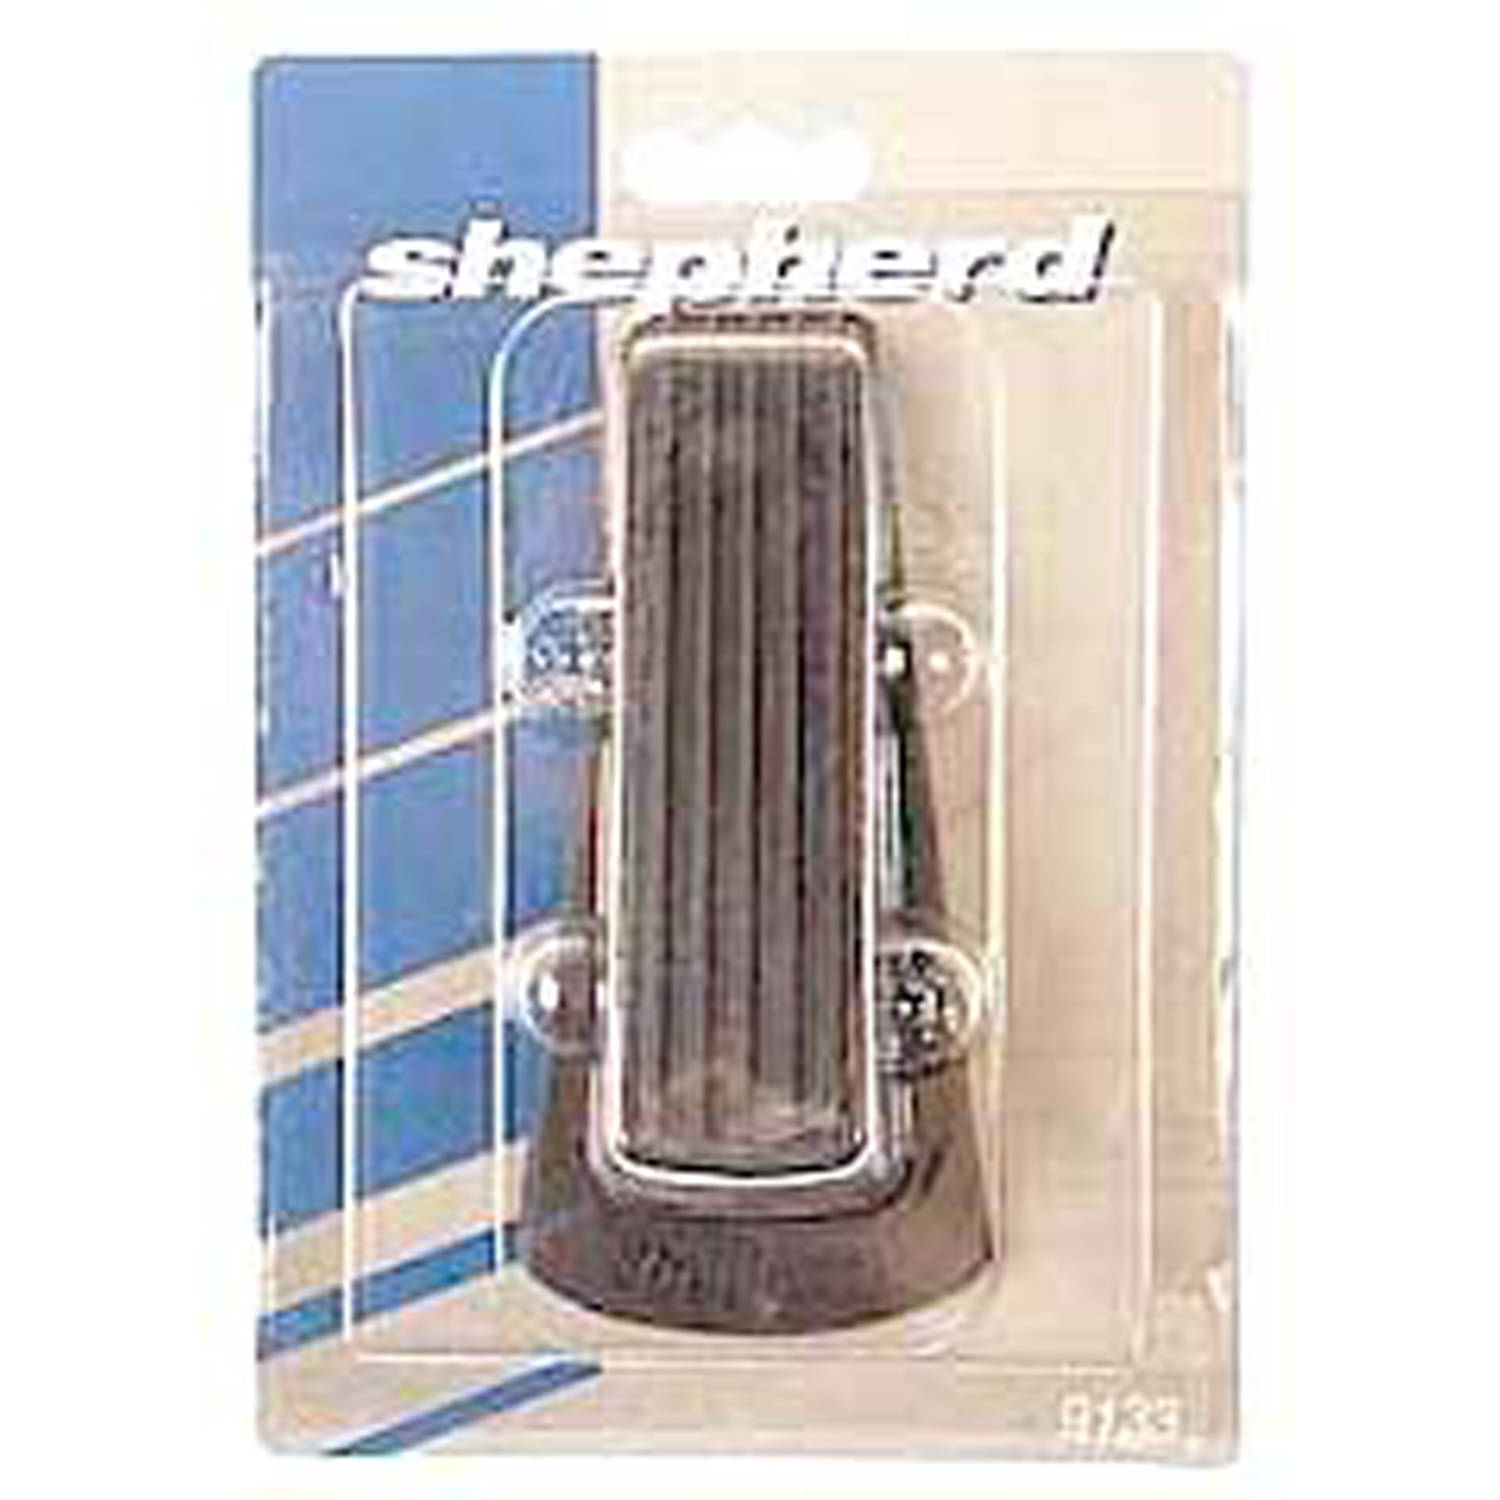 "Shepherd 9673 2"" Black fice Chair Twin Wheel Push Up Stem Caster"